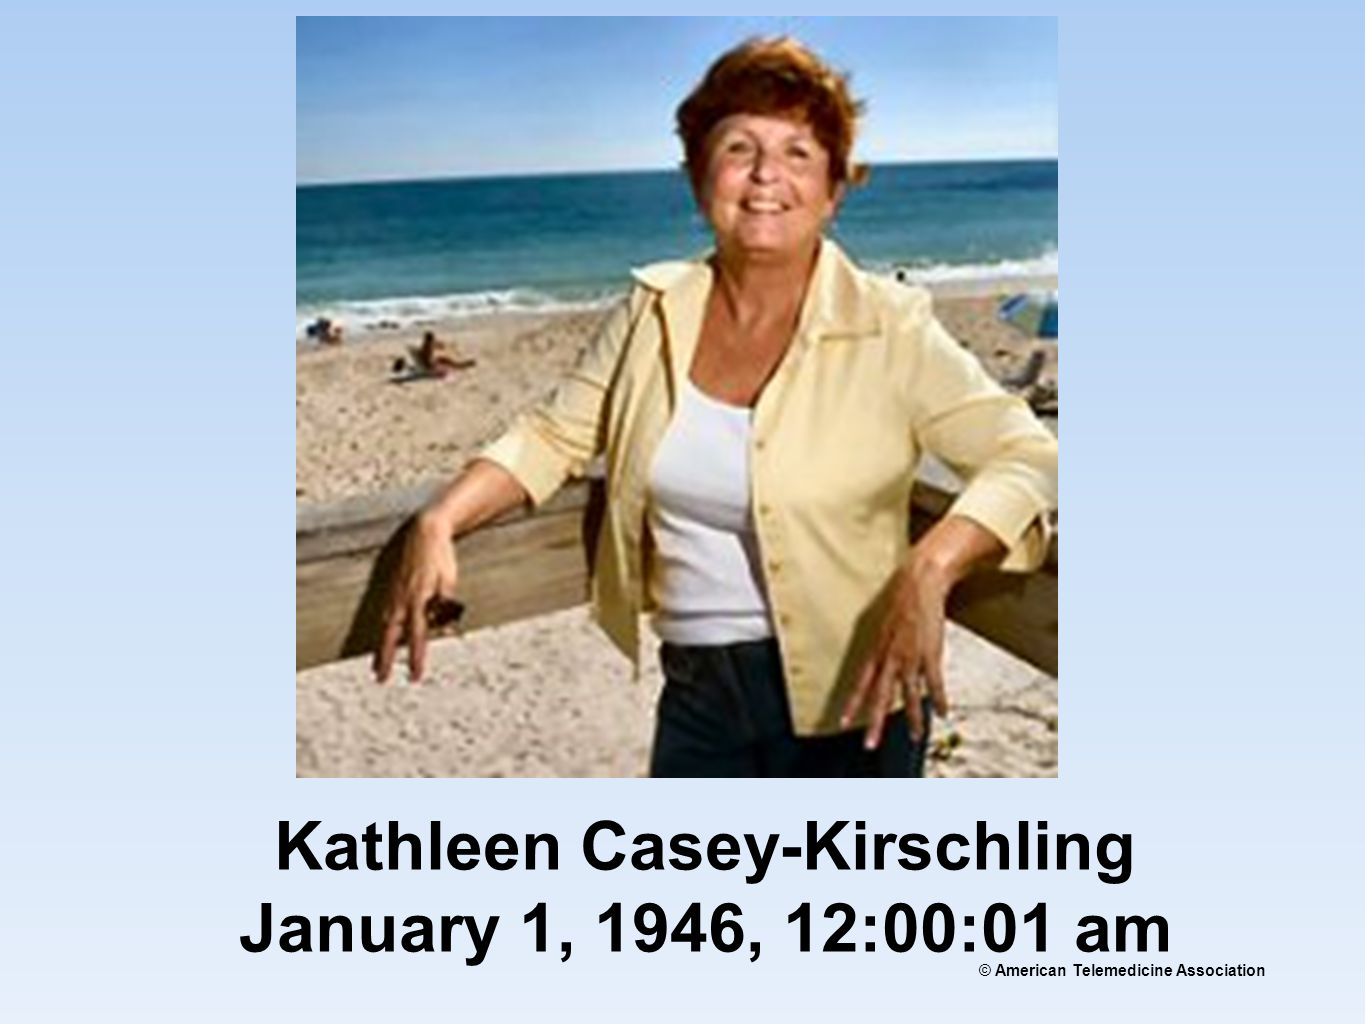 © American Telemedicine Association Kathleen Casey-Kirschling January 1, 1946, 12:00:01 am